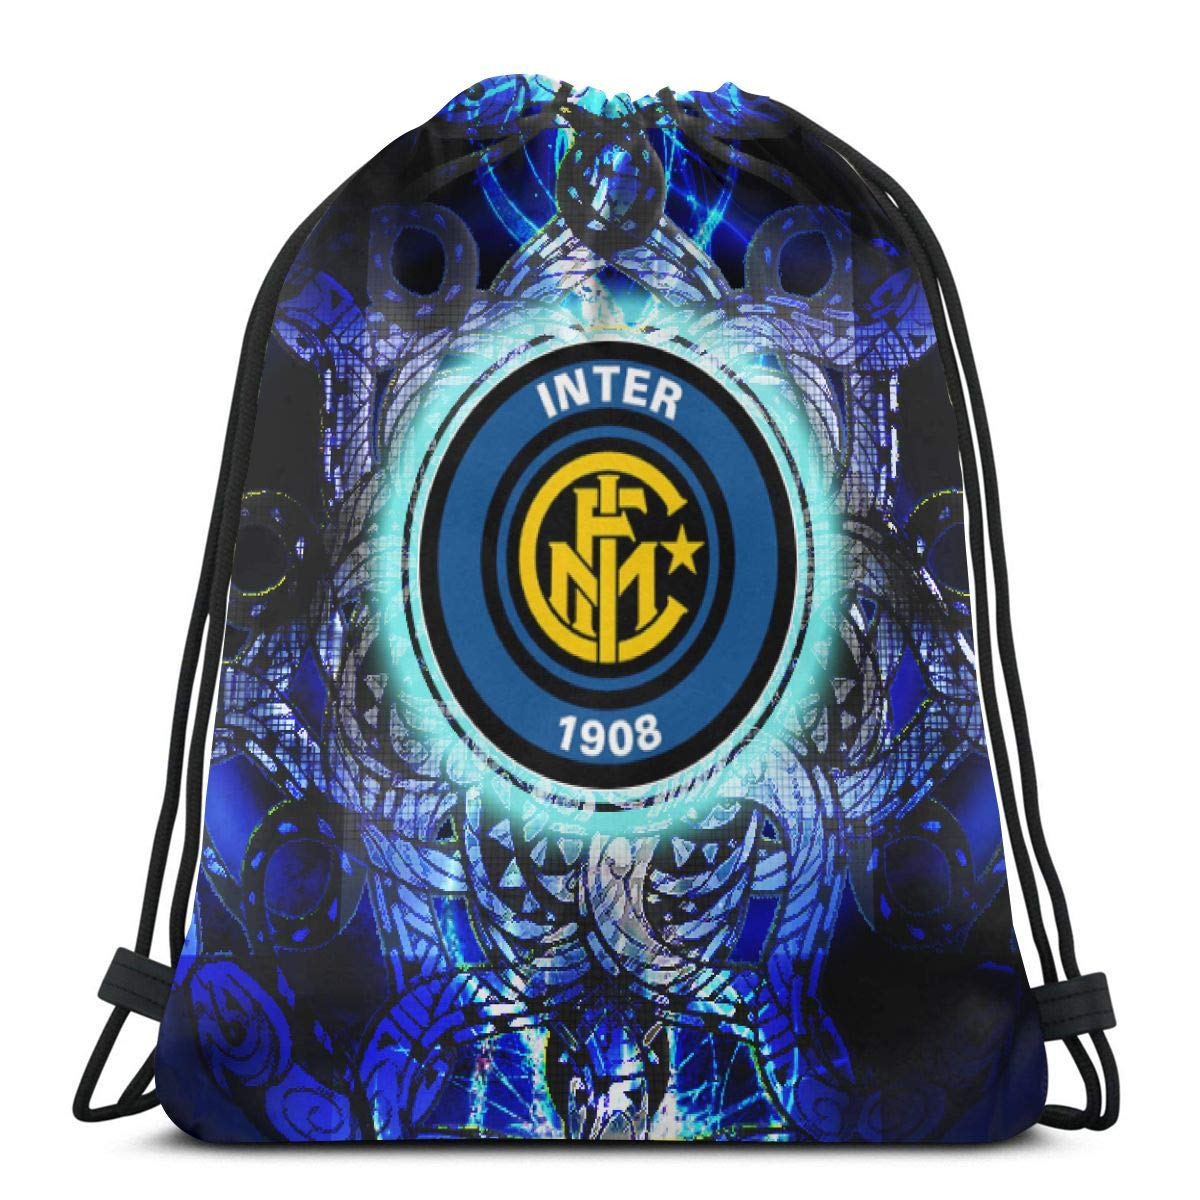 Inter Milan Drawstring Backpack Sport Bags Cinch Tote Bags For Sport And Storage